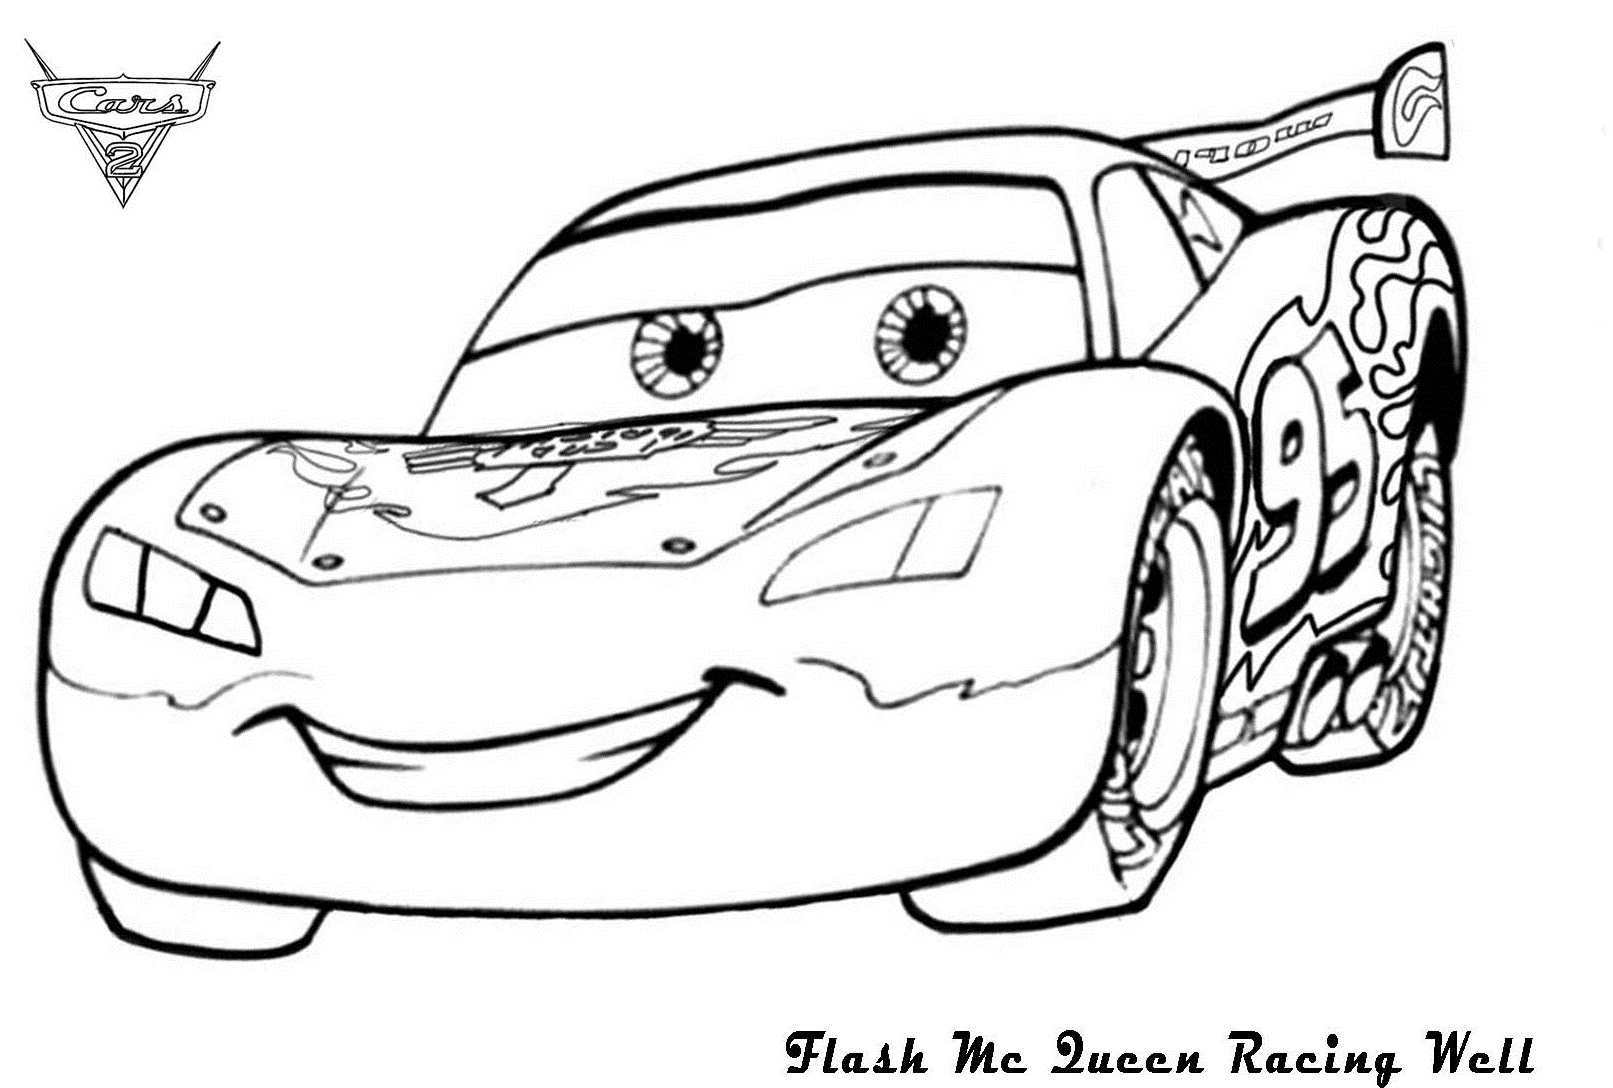 Lightning mcqueen coloring pages to download and print for